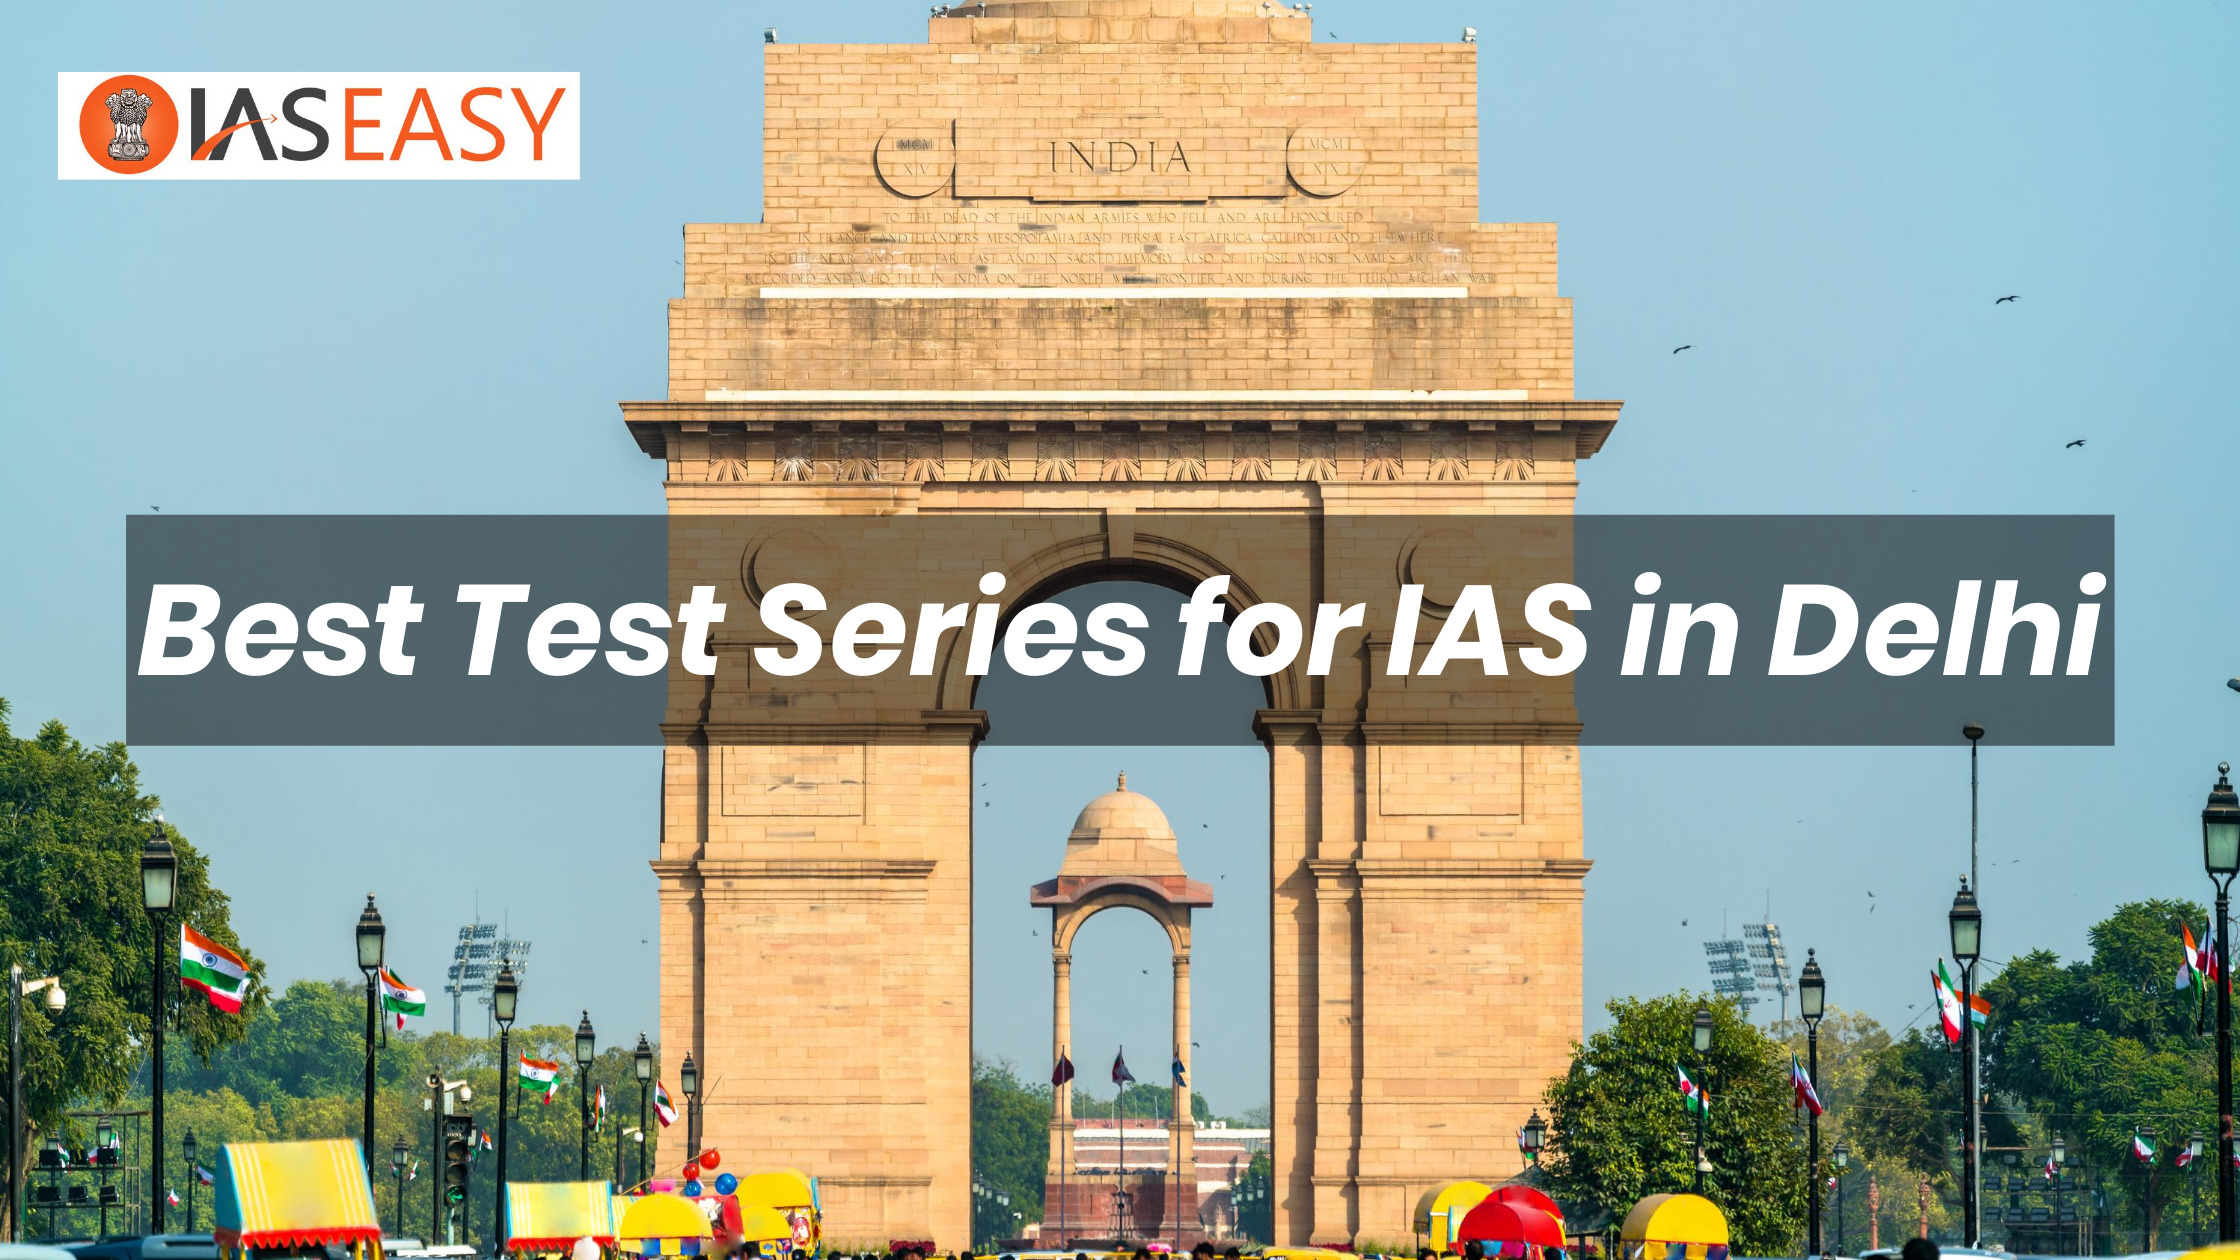 Best Test Series for IAS in Delhi